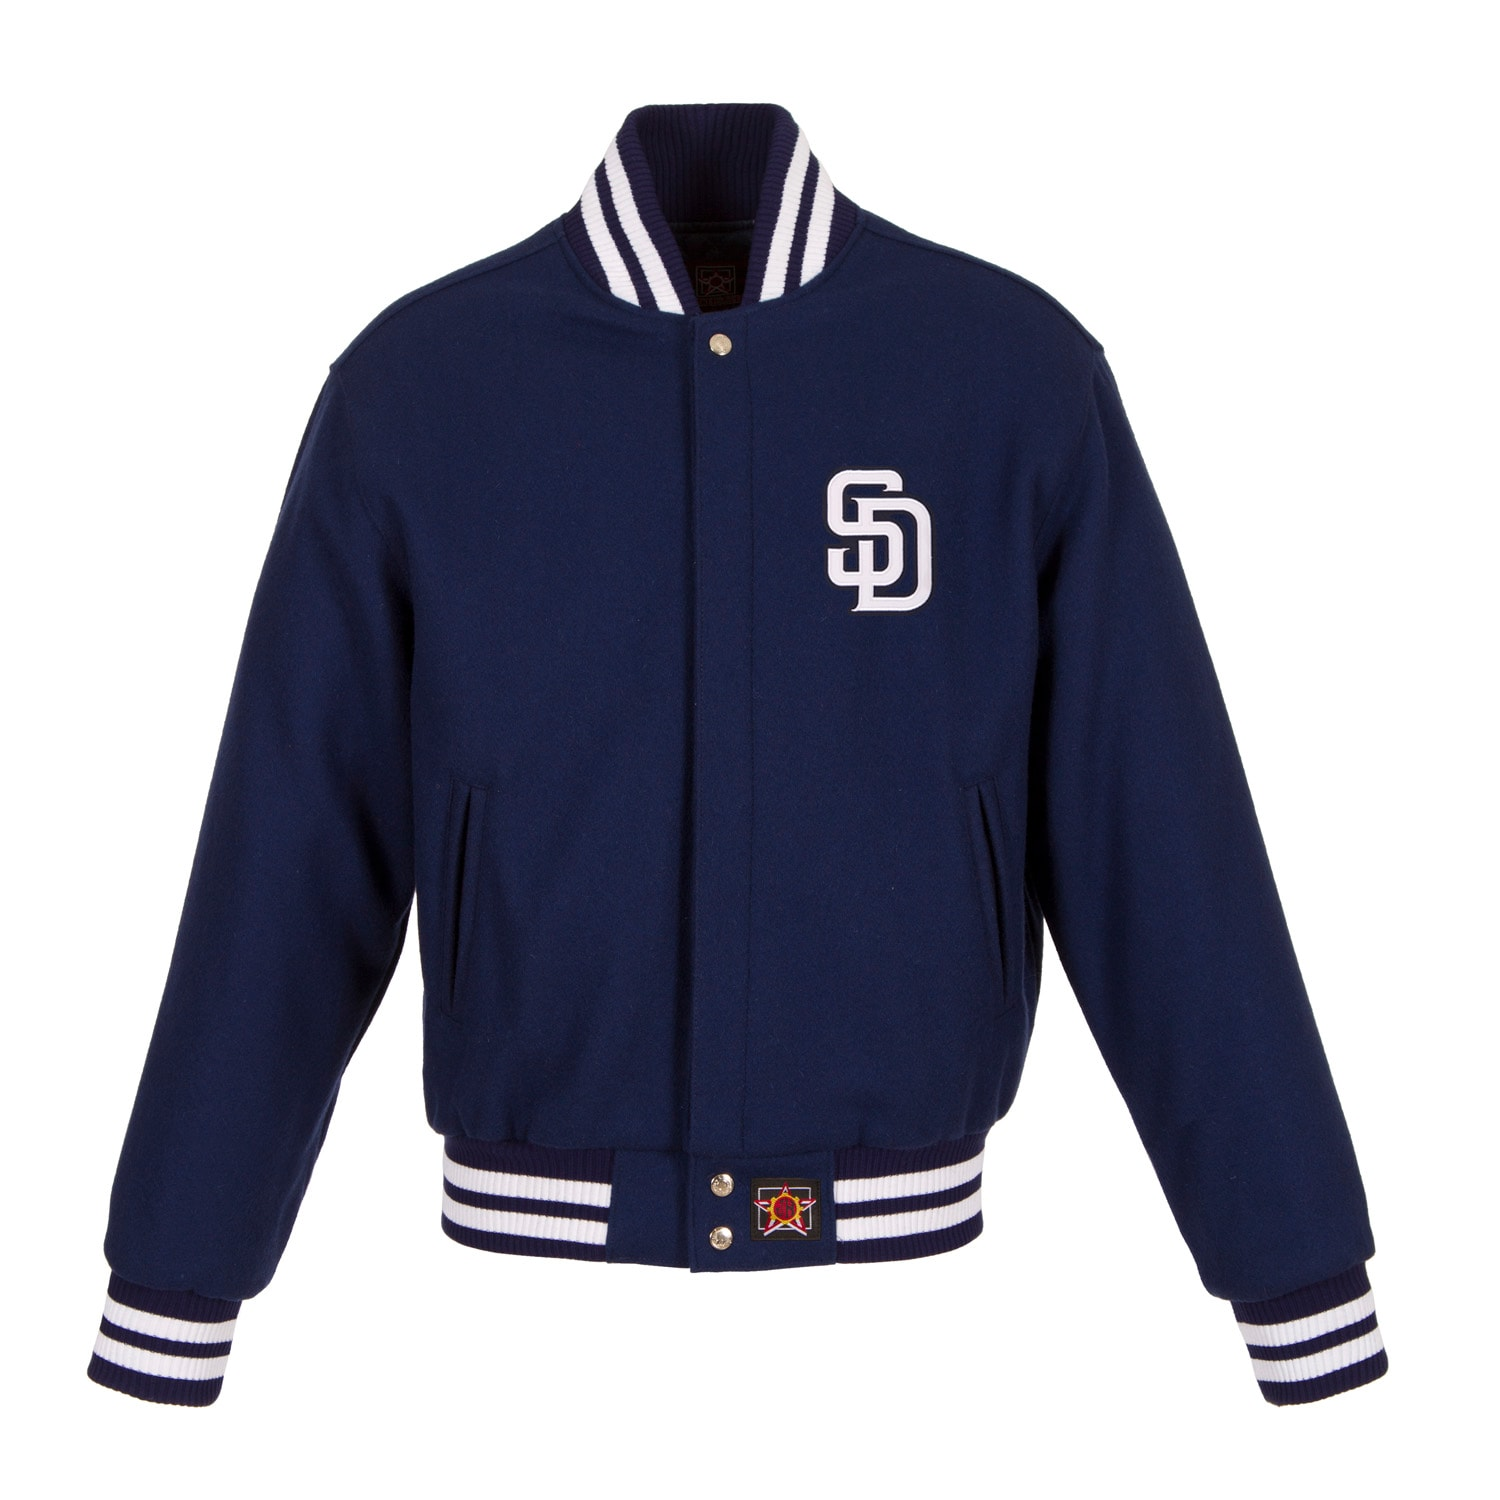 San Diego Padres JH Design Women's Embroidered Logo All-Wool Jacket - Navy